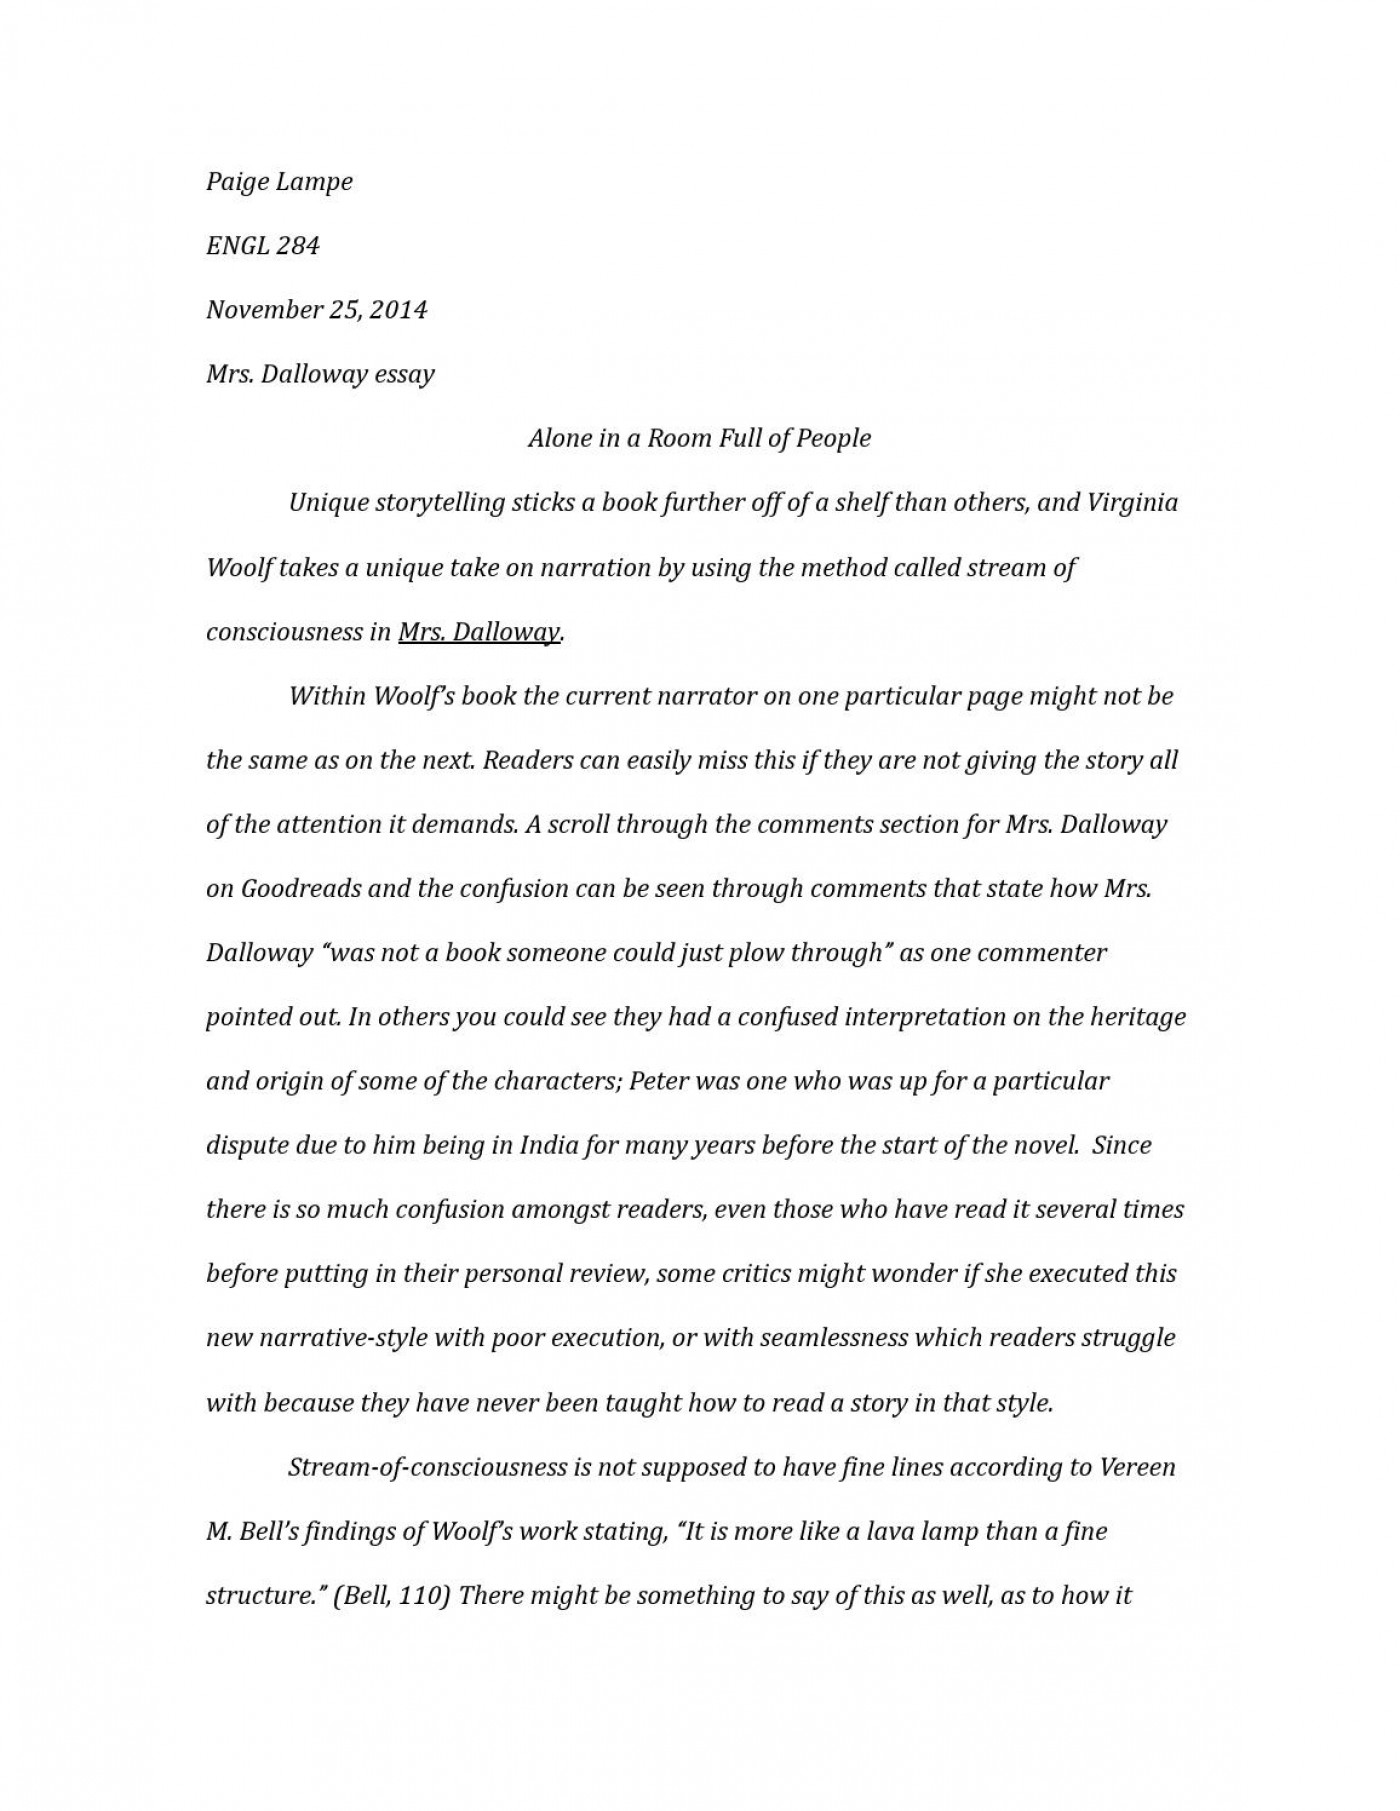 002 Mrs Dalloway Essay Page 1 Marvelous Critical Analysis Prompts 1400